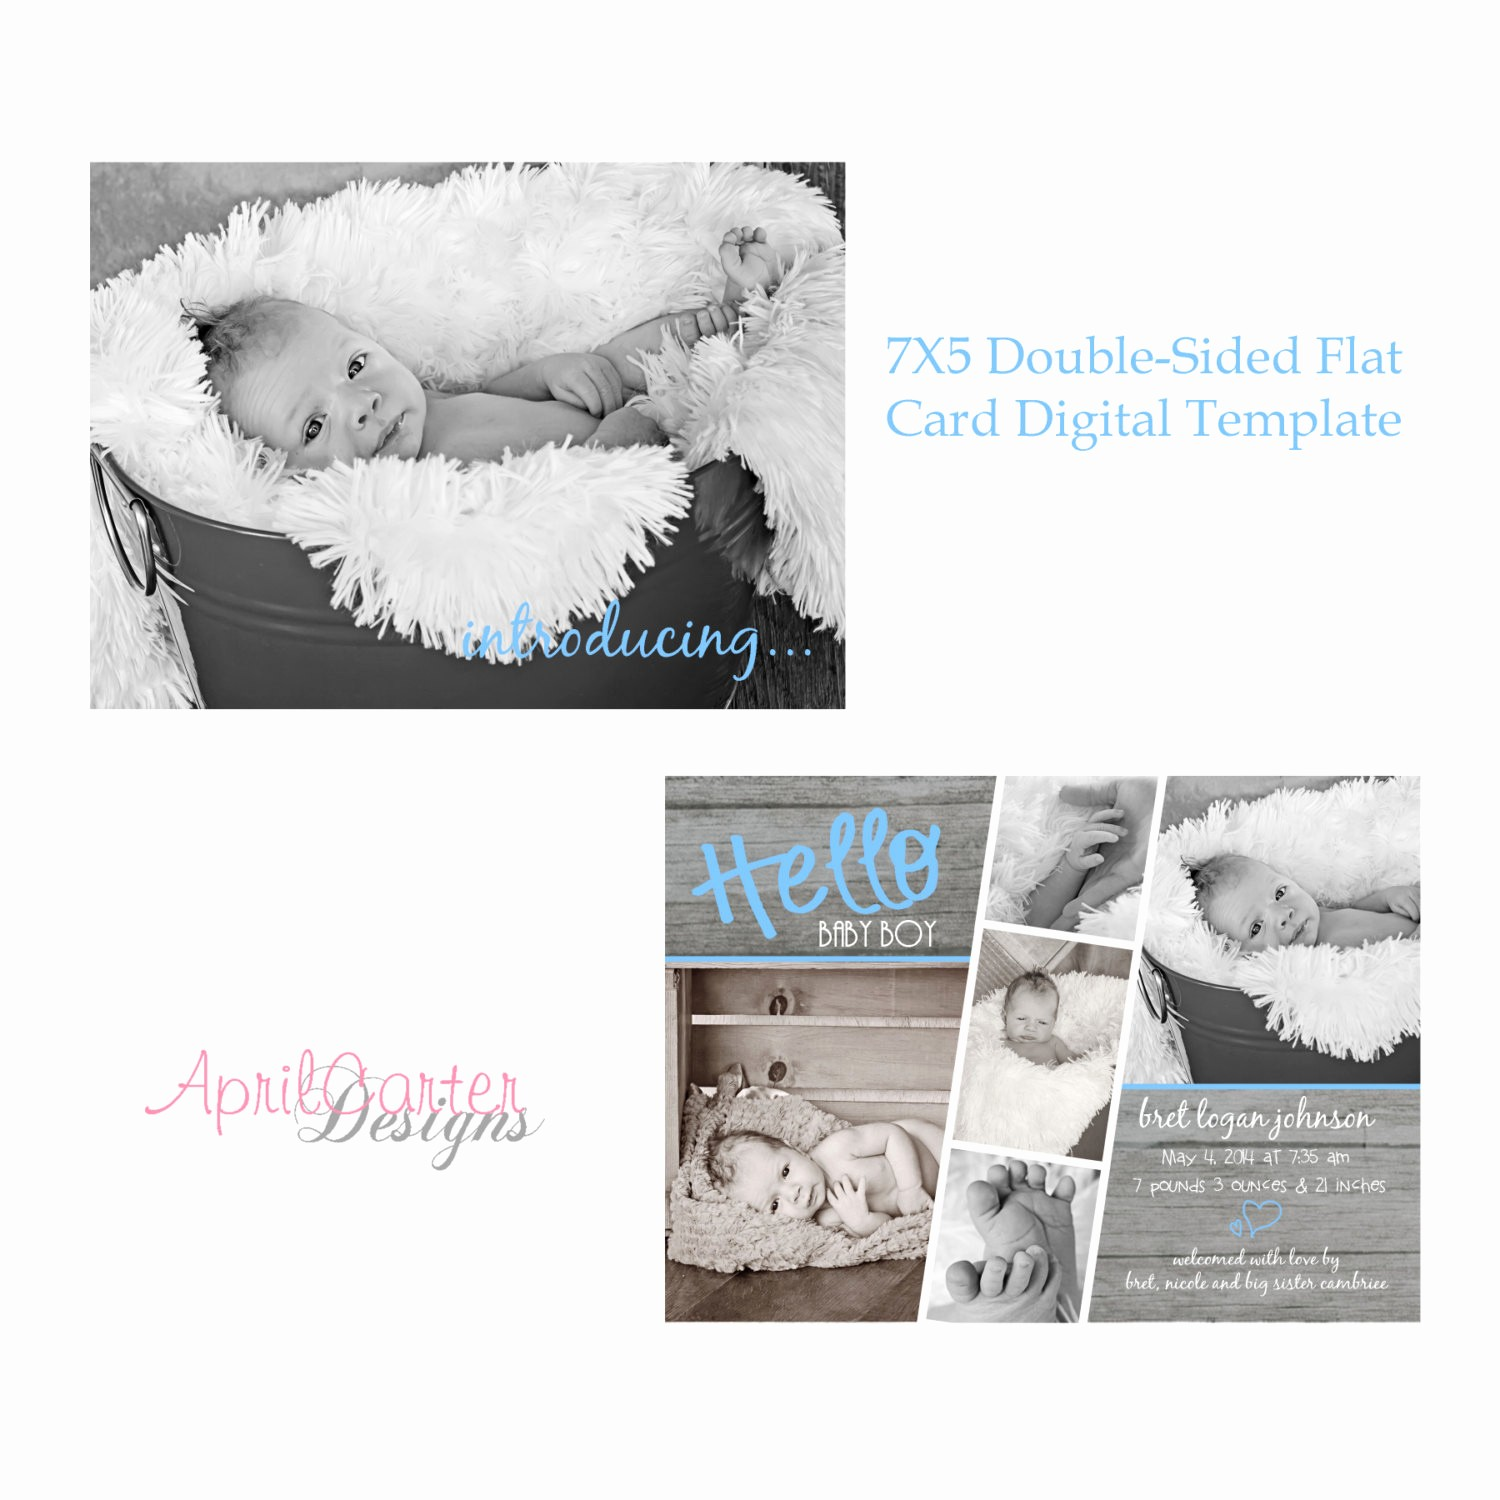 Baby Boy Birth Announcement Template Beautiful Strip Baby Boy Birth Announcement Template 7x5 Flat